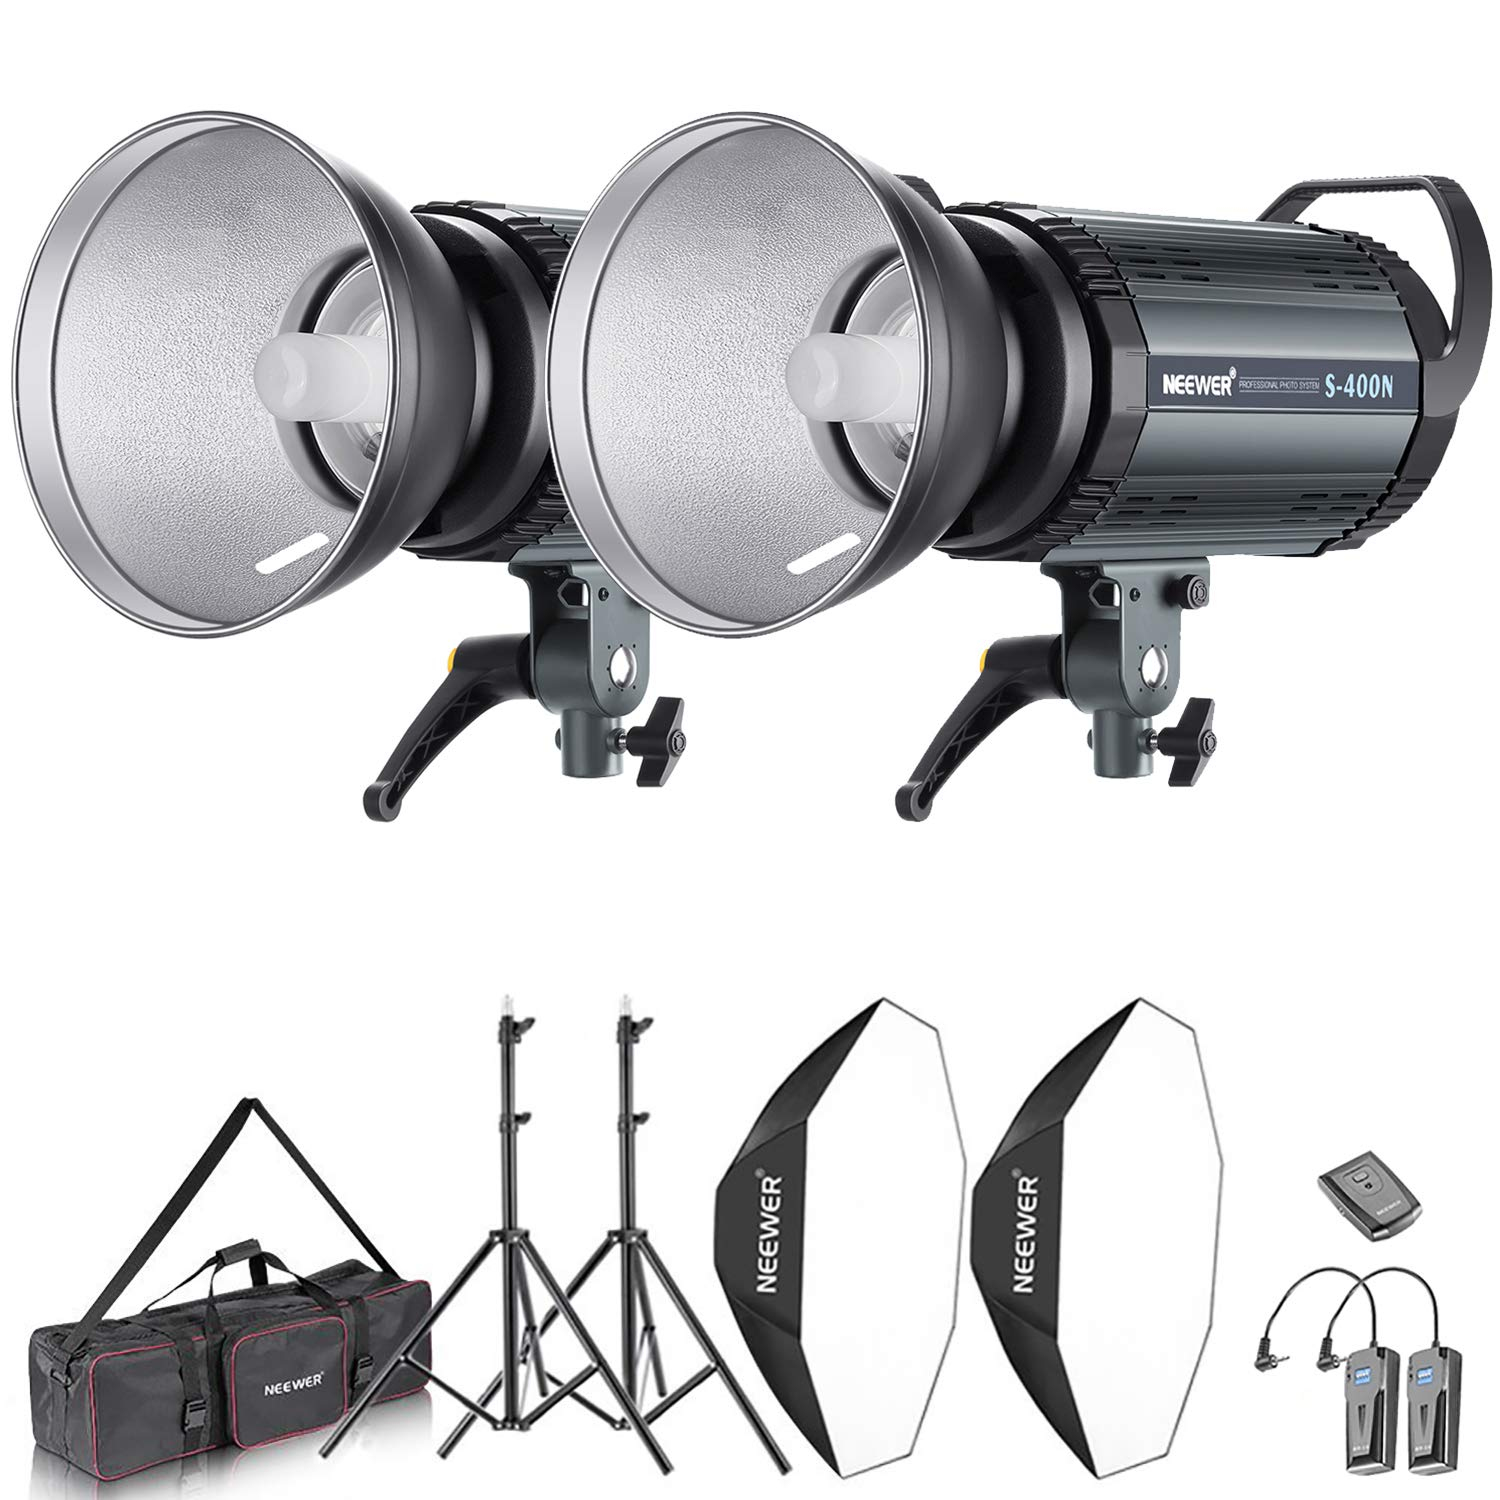 Neewer 800W Photo Studio Strobe Flash and Softbox Lighting Kit: (2)400W Monolight Flash(S-400N),(2)Reflector Bowens Mount,(2)Light Stand,(2)Softbox,(2)Modeling Lamp,(1)RT-16 Wireless Trigger,(1)Bag